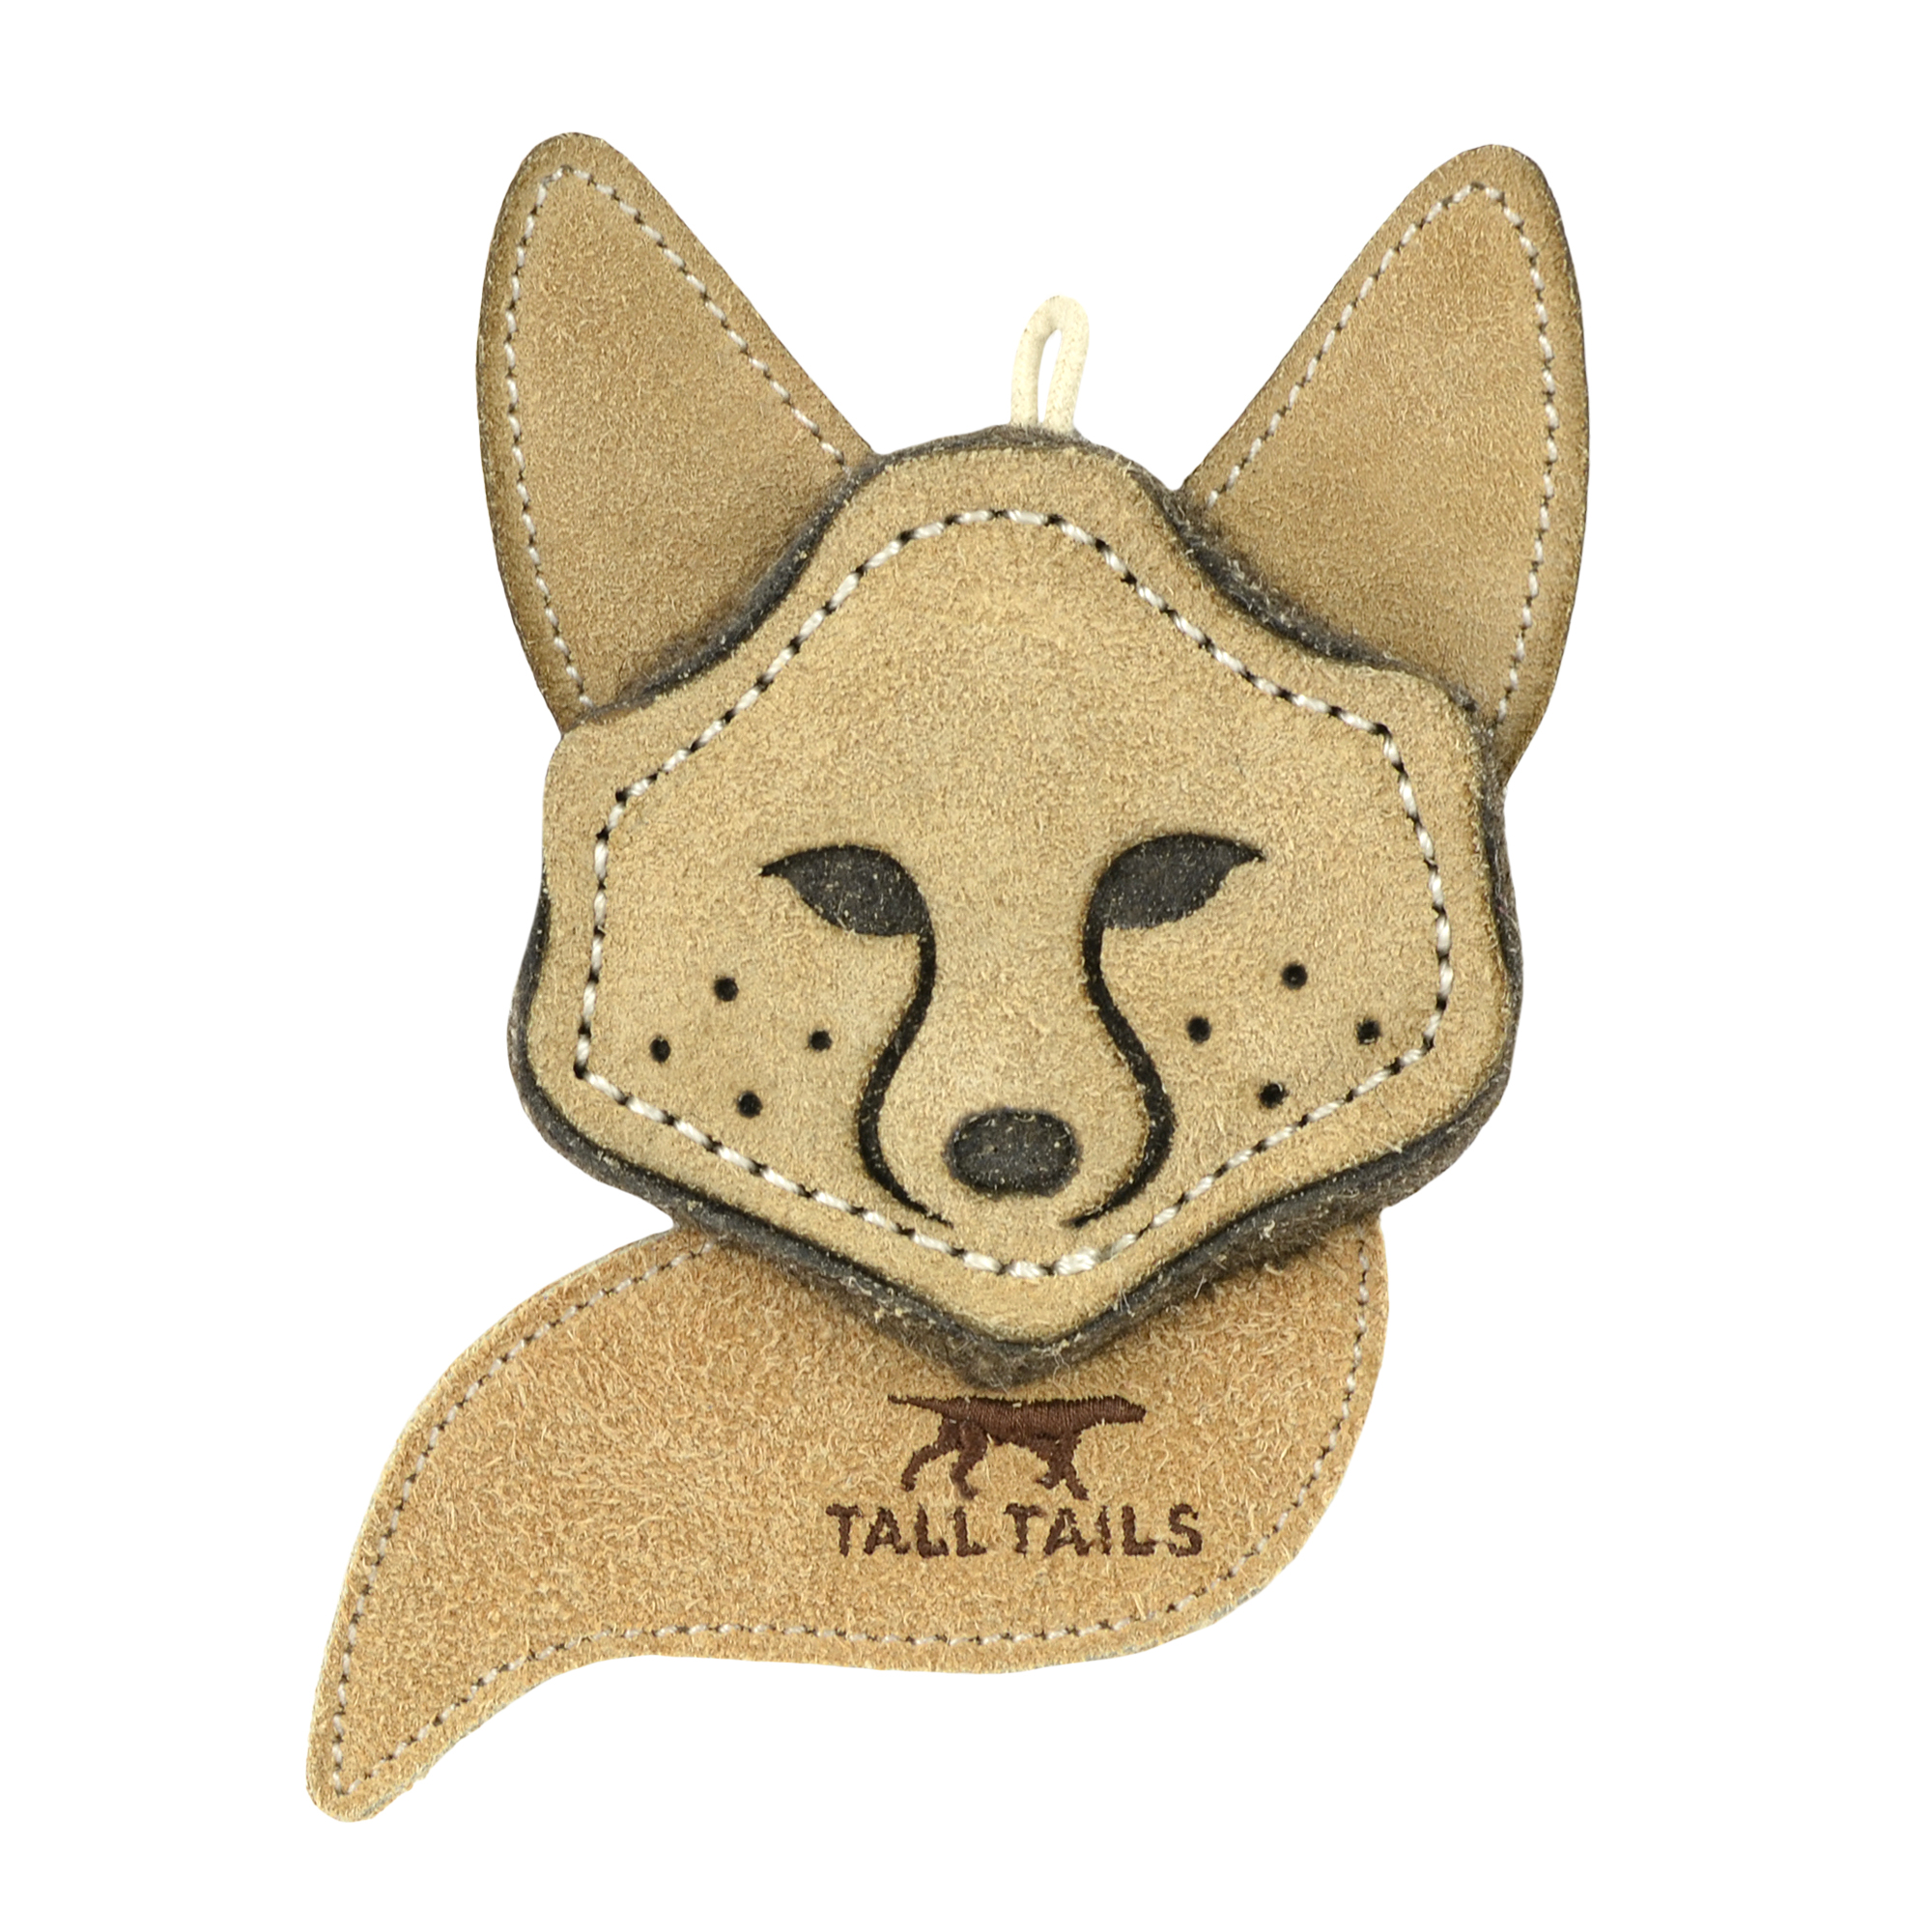 Tall Tails Natural Leather Fox Dog Toy, 4-in (Size: 4-in) Image